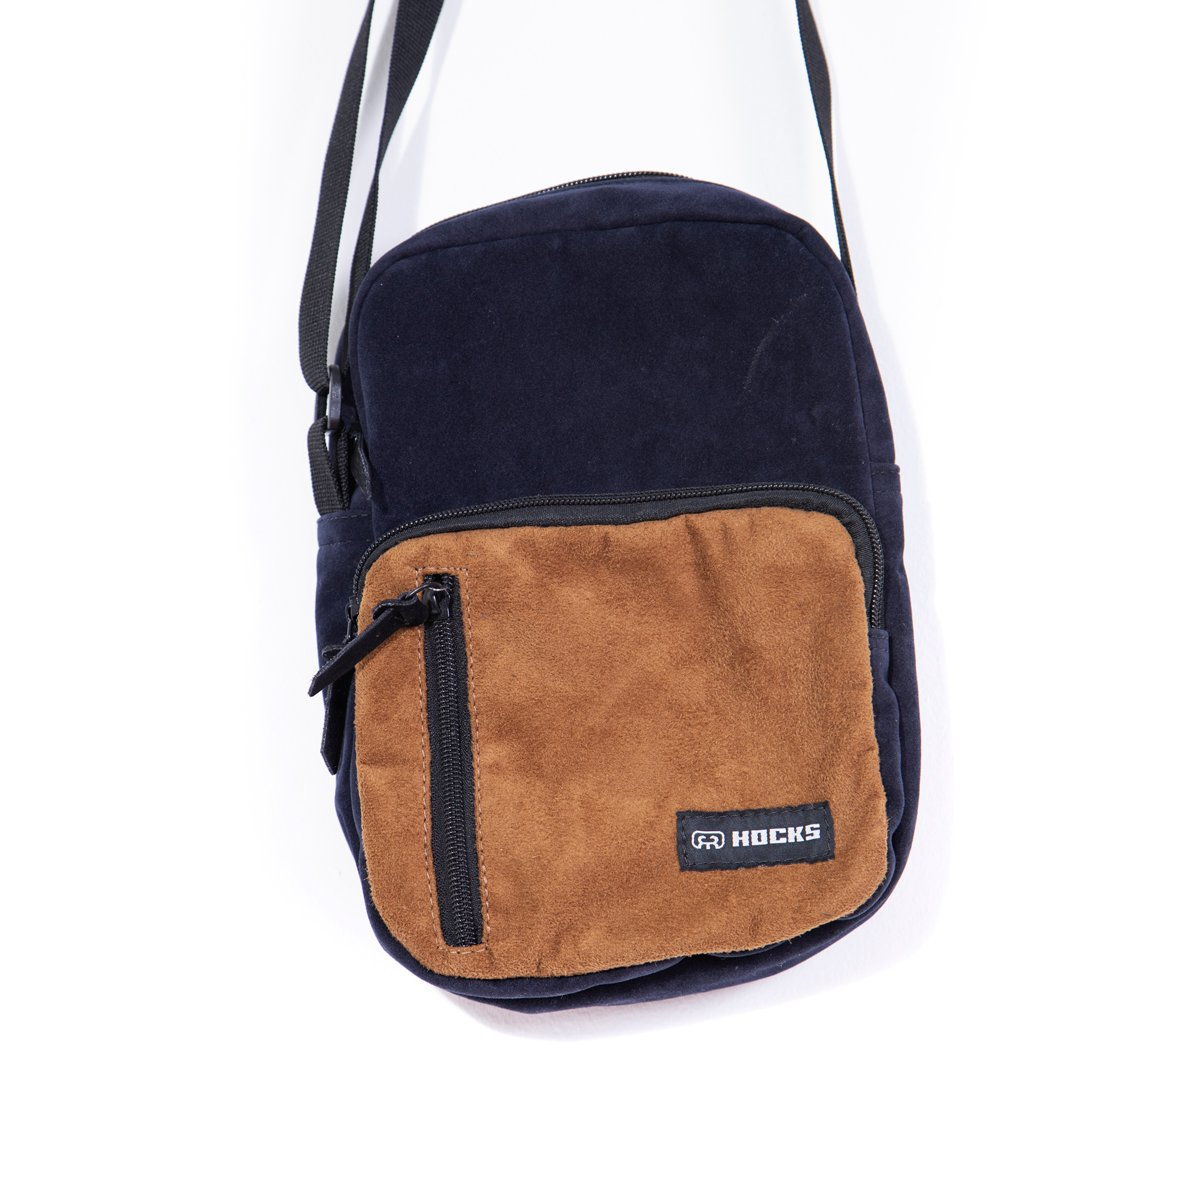 Shoulder Bag Viaggio 2